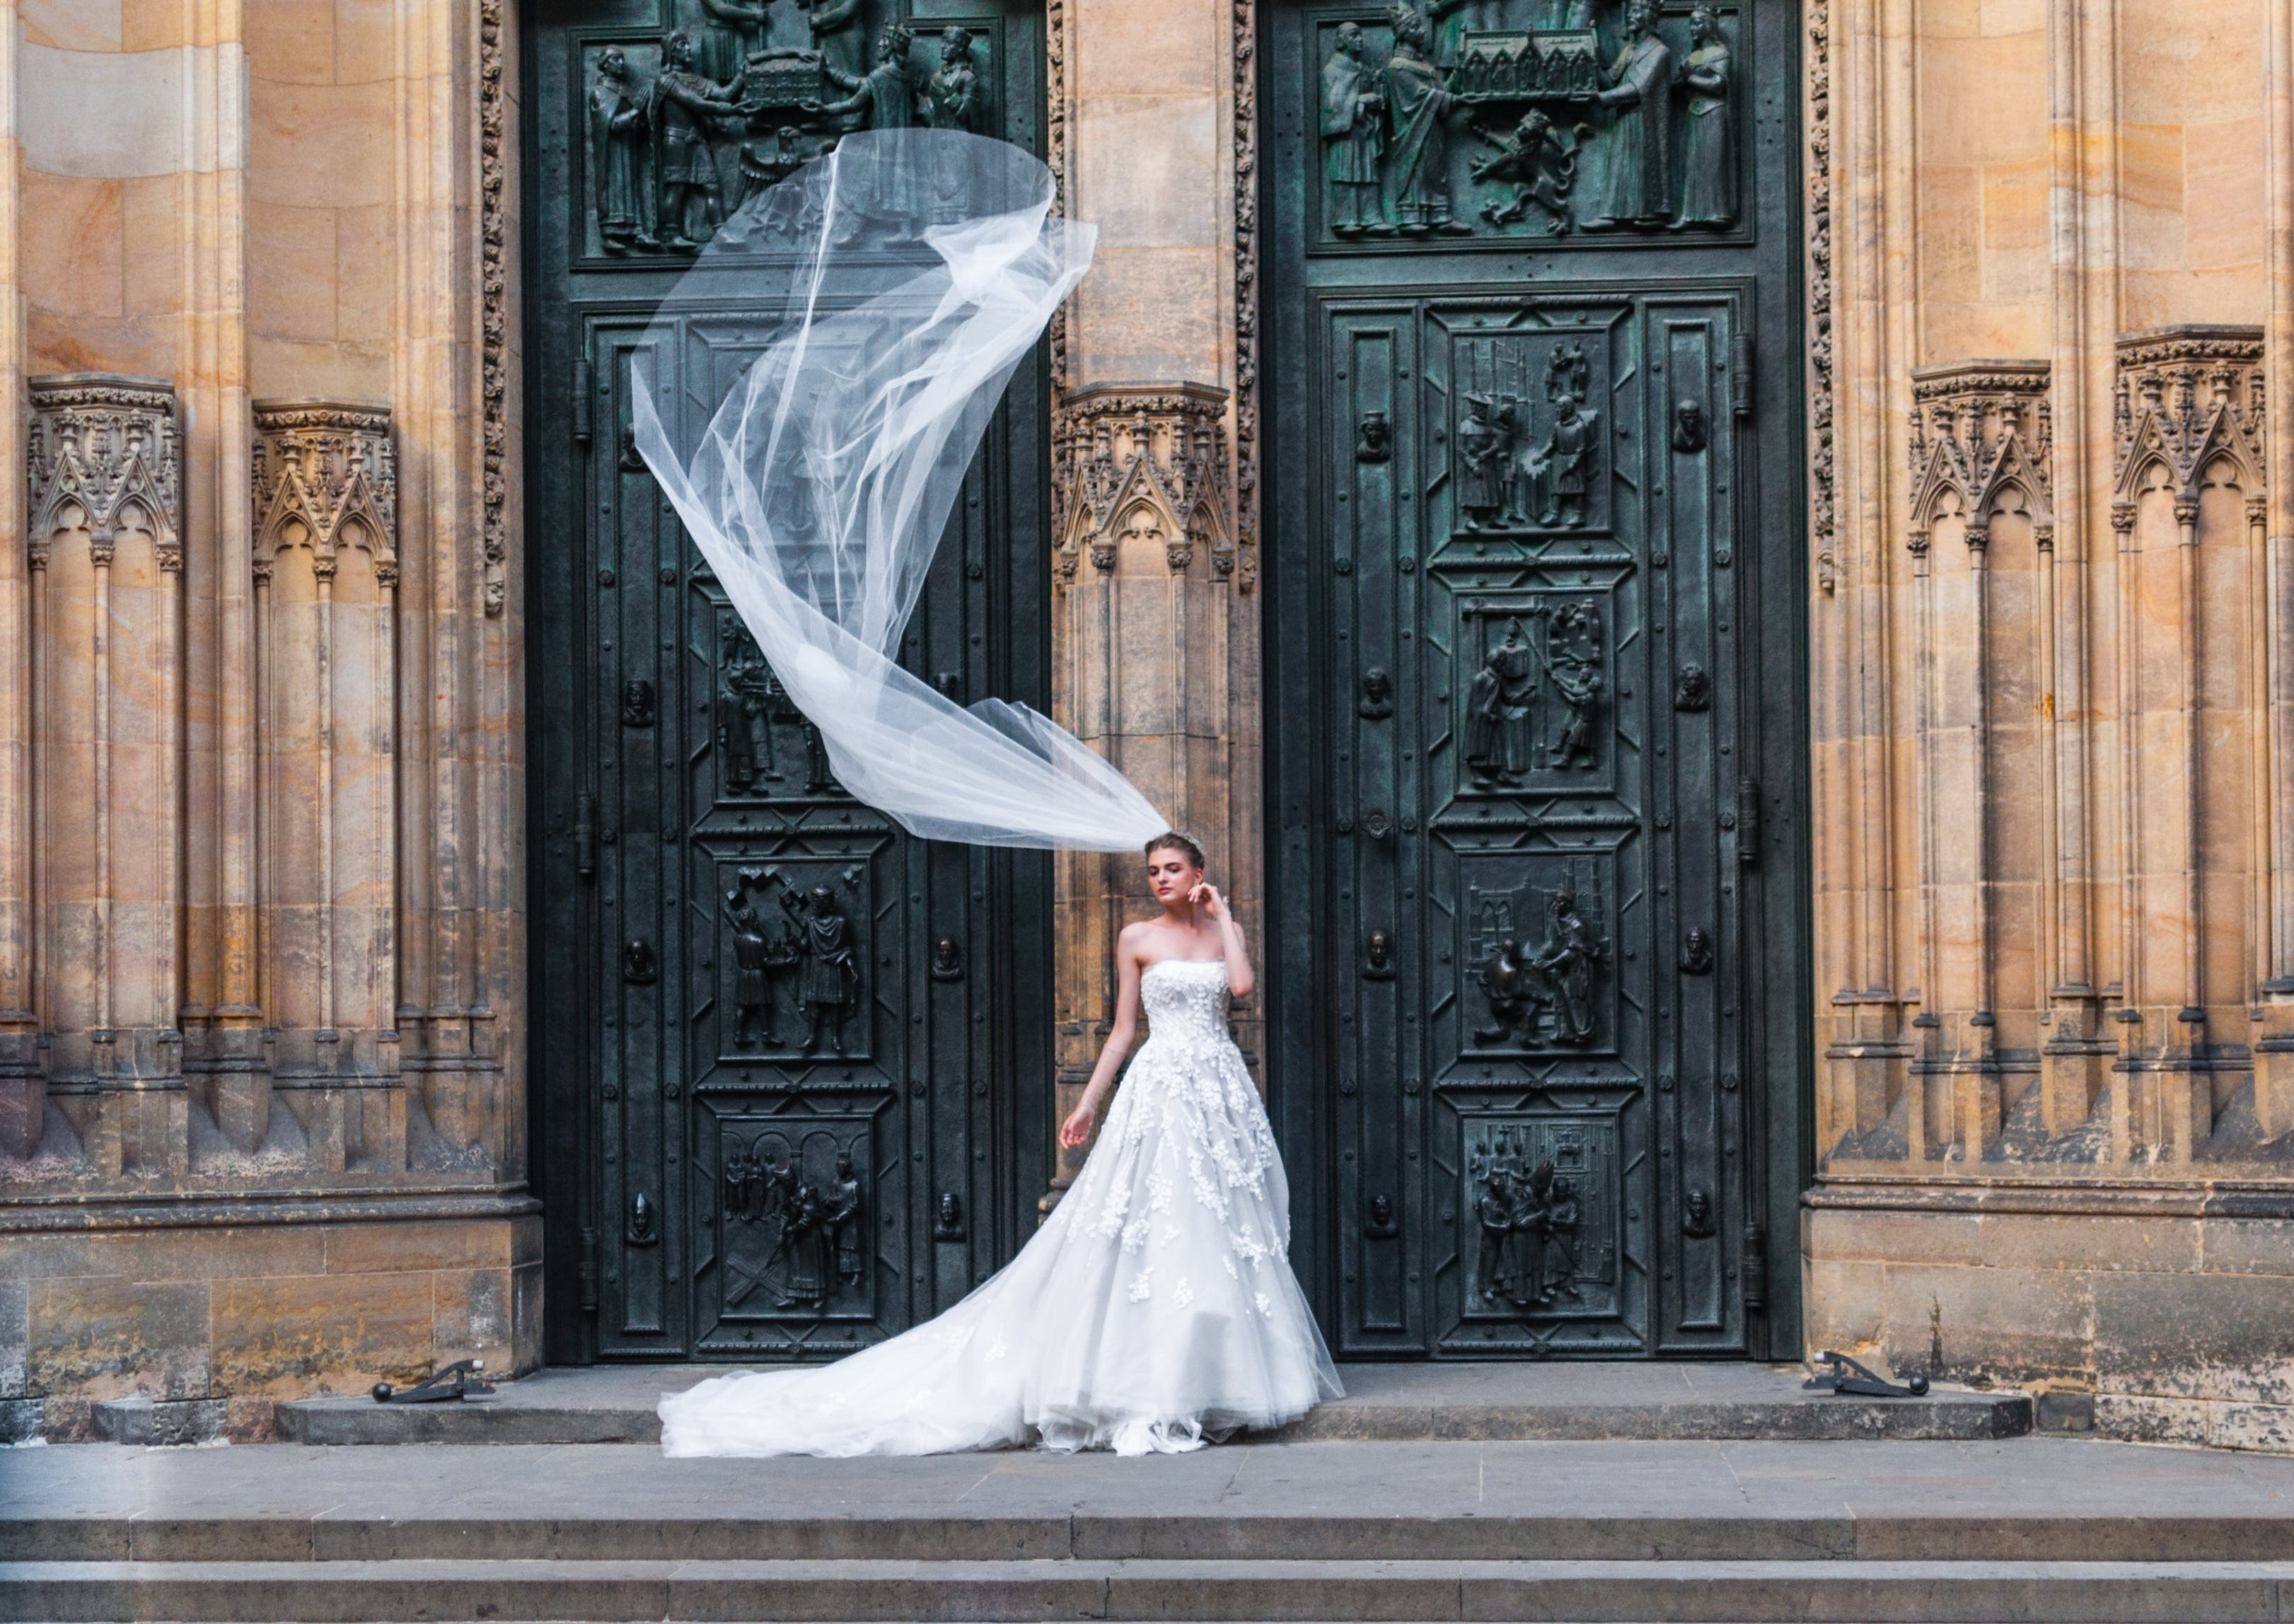 Woman Wearing Wedding Dress Standing Near Closed Doors